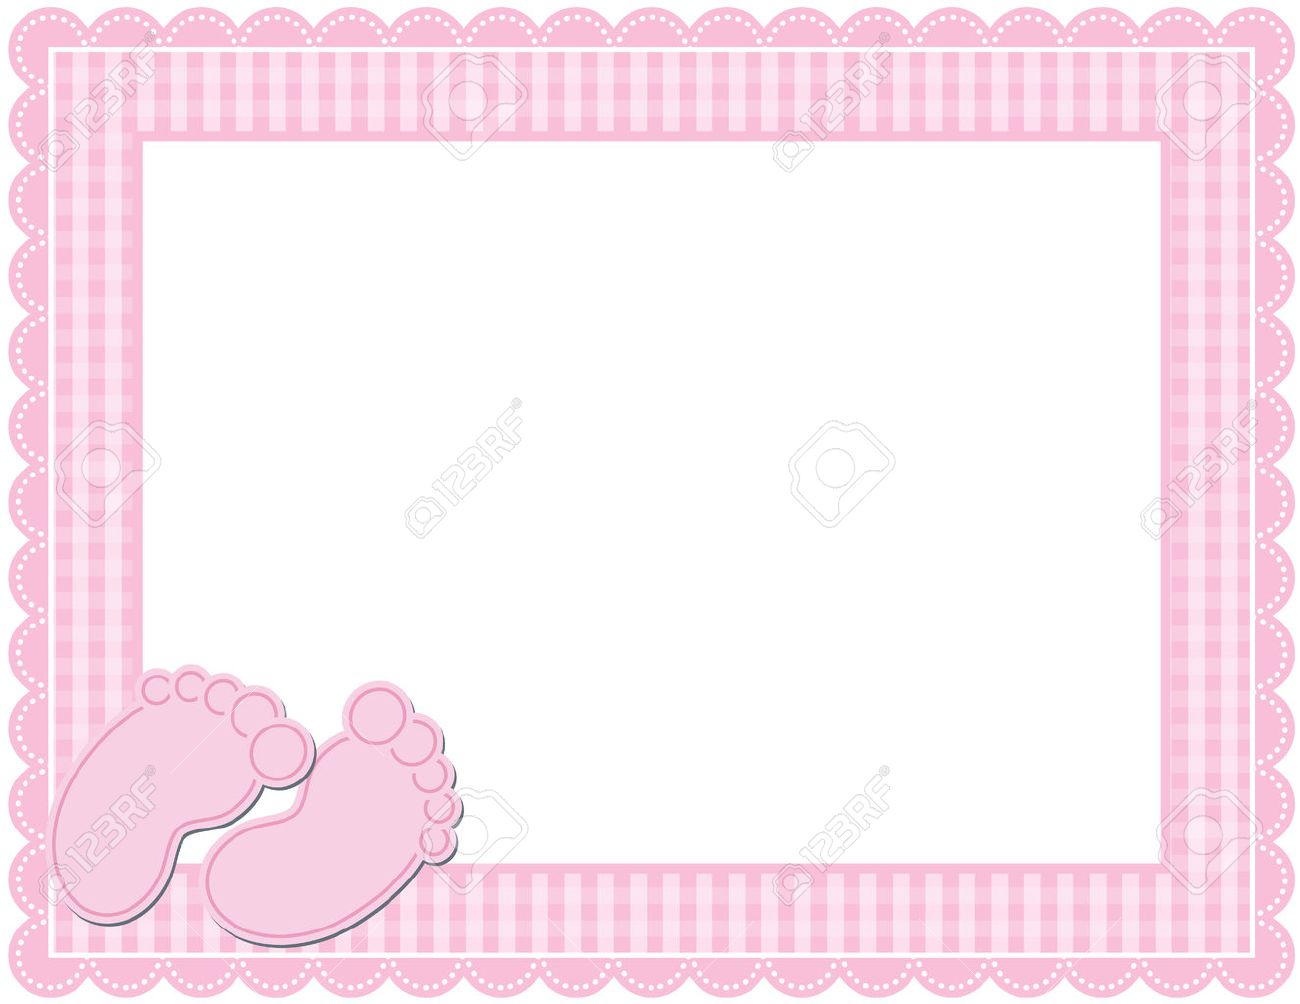 Baby girl border clipart picture transparent download Baby girl border clipart 7 » Clipart Station picture transparent download